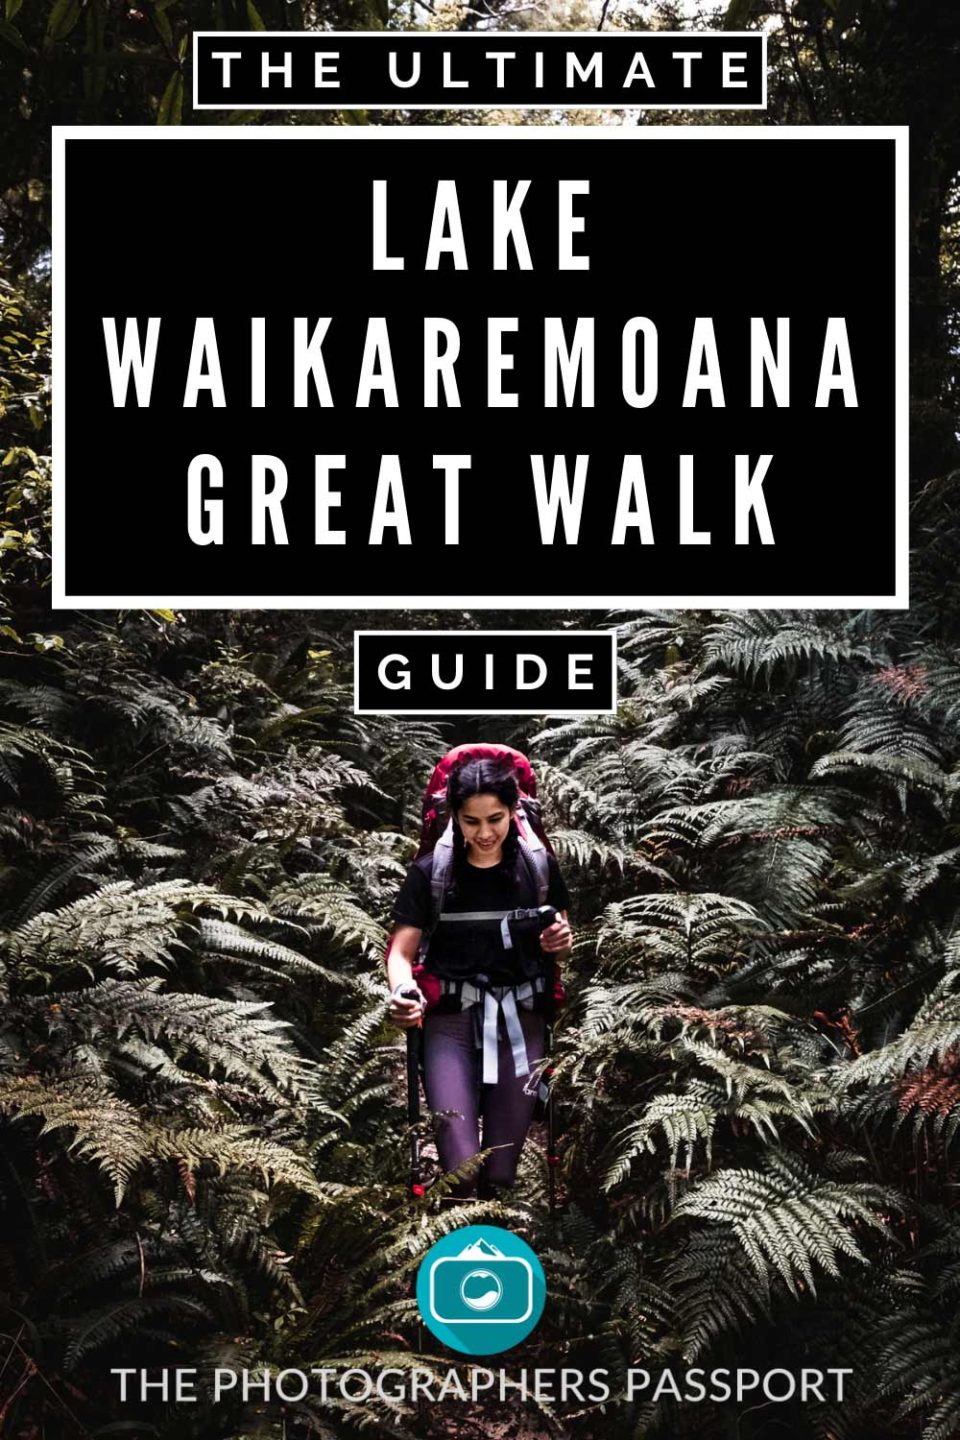 The Lake Waikaremoana Great Walk is an amazing multi day hike located on New Zealand's North Island. Want to find out more?